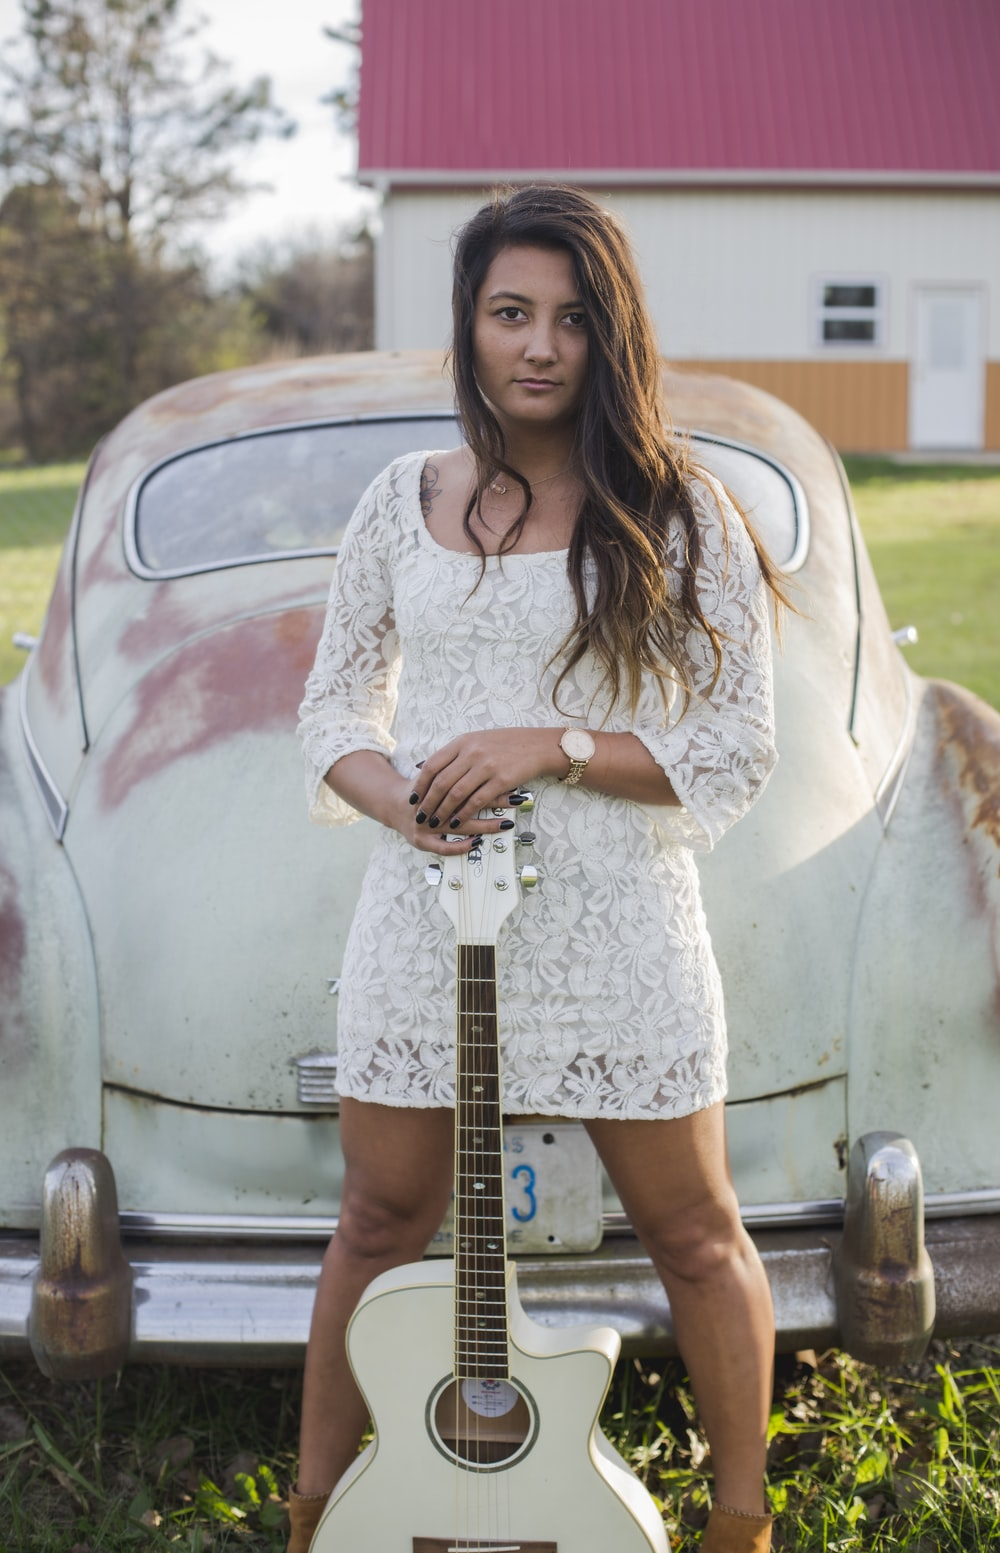 A woman in a dress holding a guitar in front of an older white car.